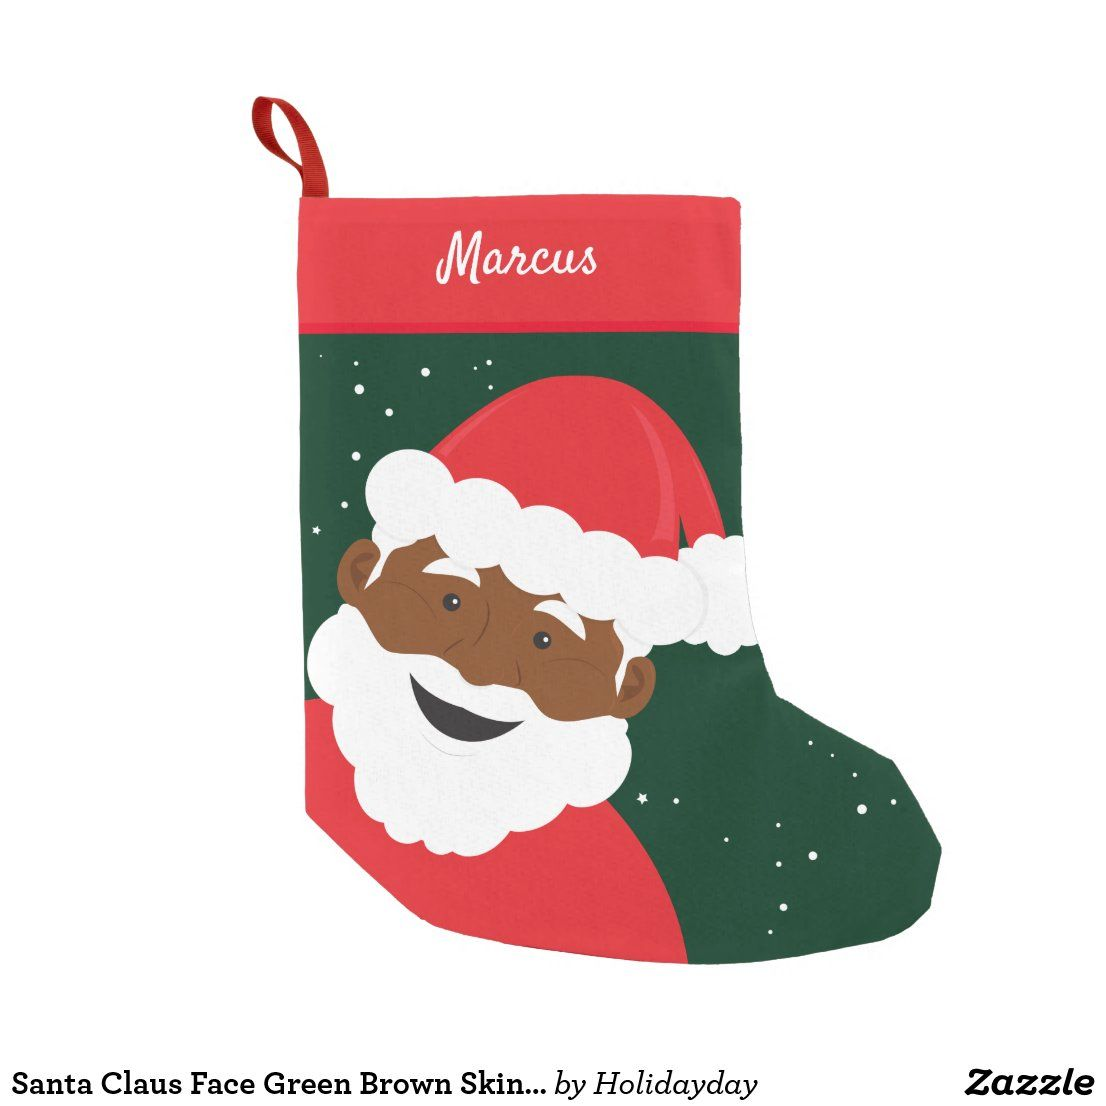 Santa Claus Face Green Brown Skin Name Small Christmas Stocking Zazzle Com Small Christmas Stockings Decorated Stockings Holiday Mantle